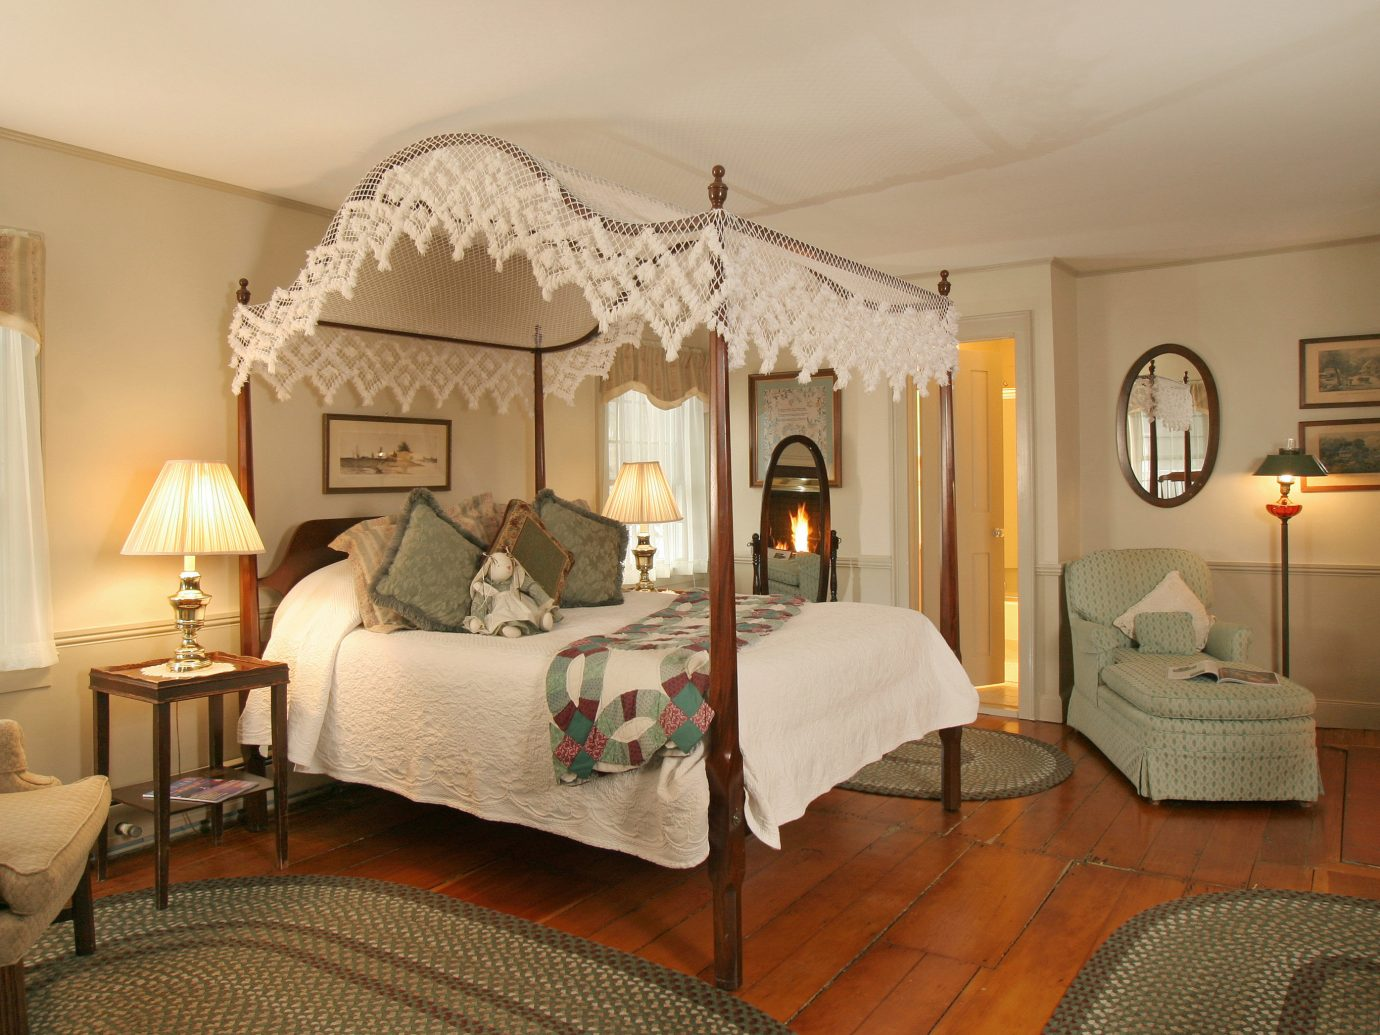 Bedroom Boutique Hotels Classic Country Hotels Inn Romantic Getaways Romantic Hotels Suite indoor wall floor room ceiling Living property chair furniture living room estate bed cottage home interior design real estate Villa nice hotel area decorated several